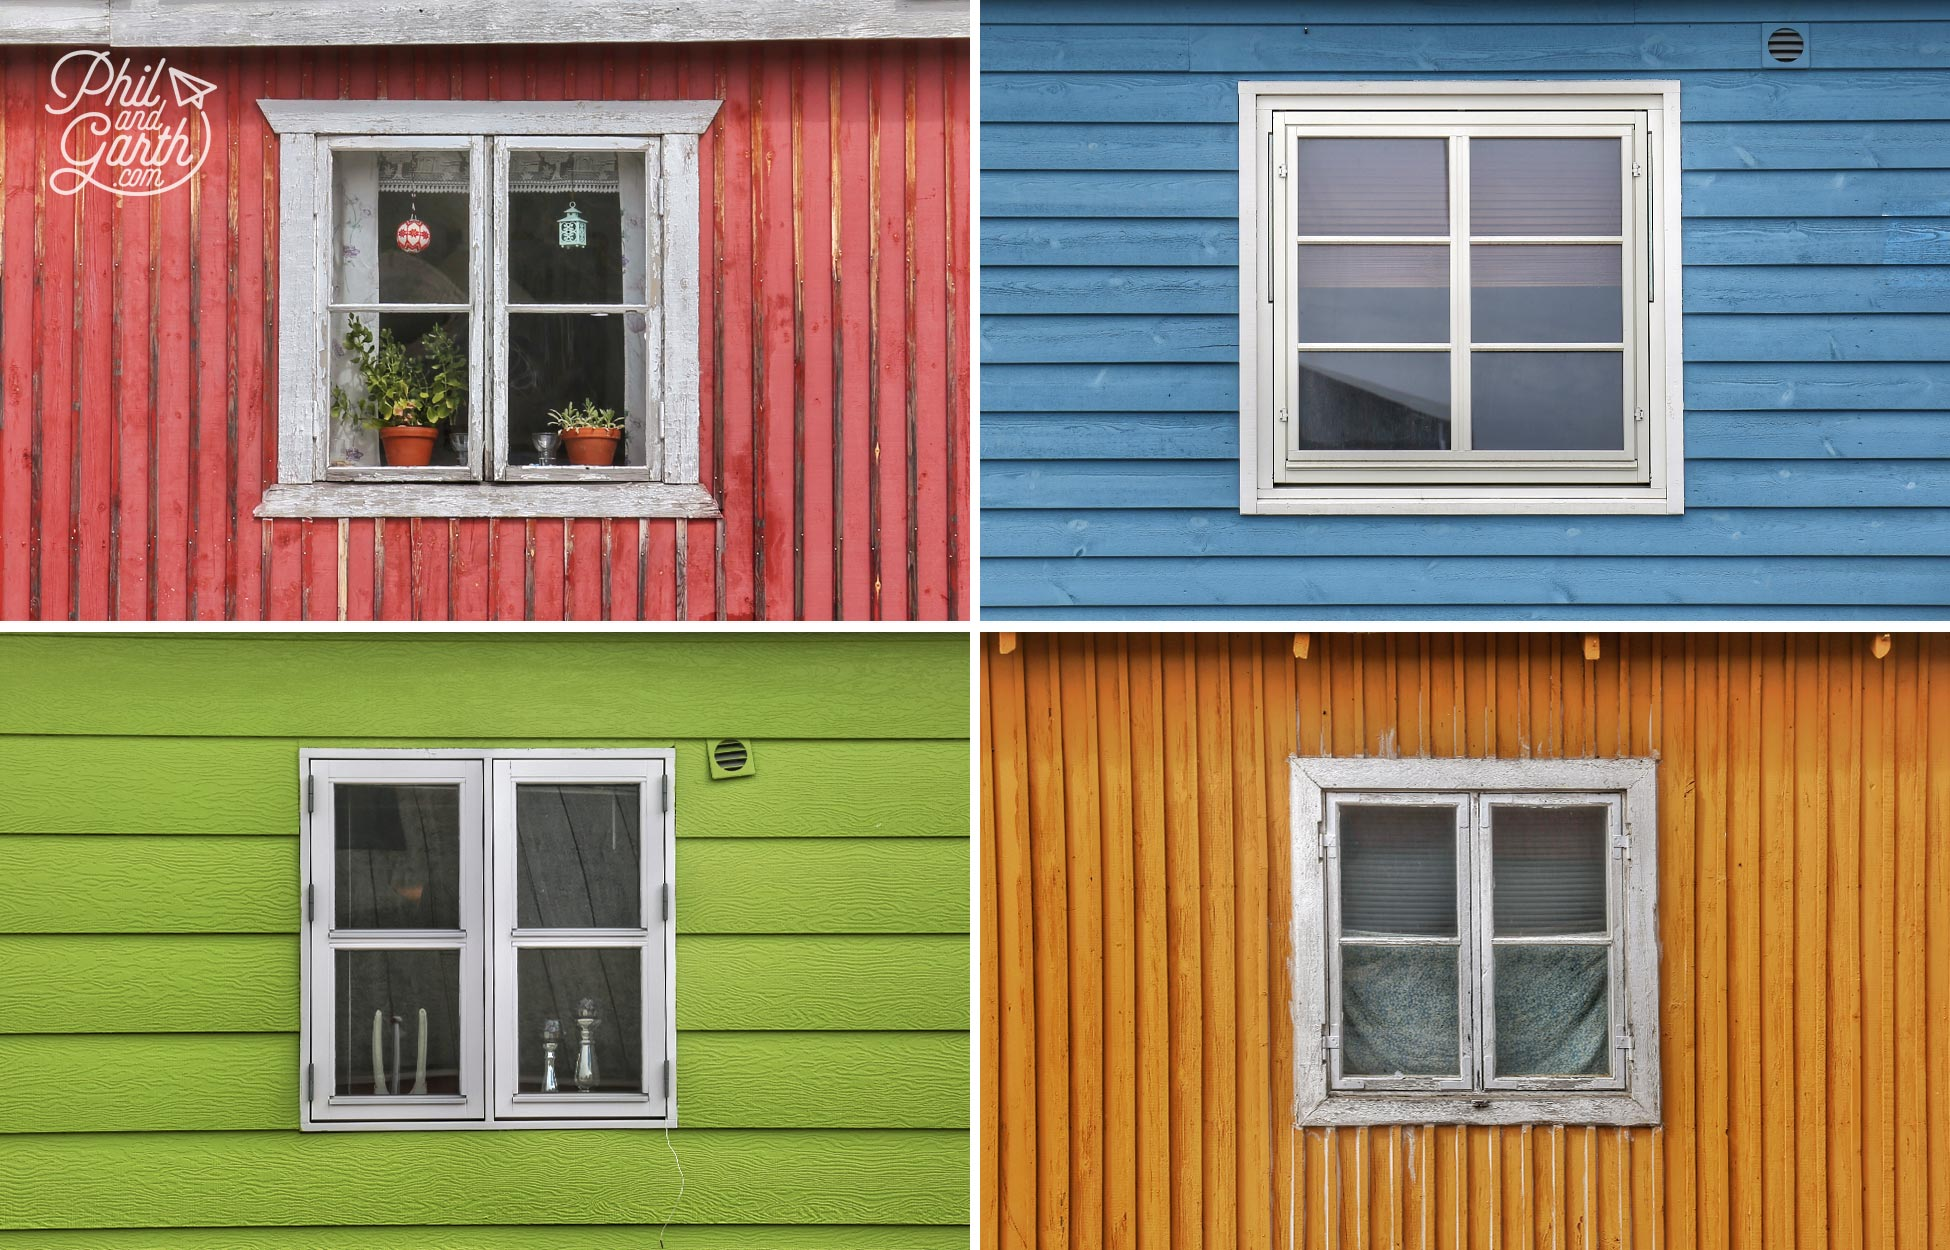 Colourful painted homes of Ilulissat